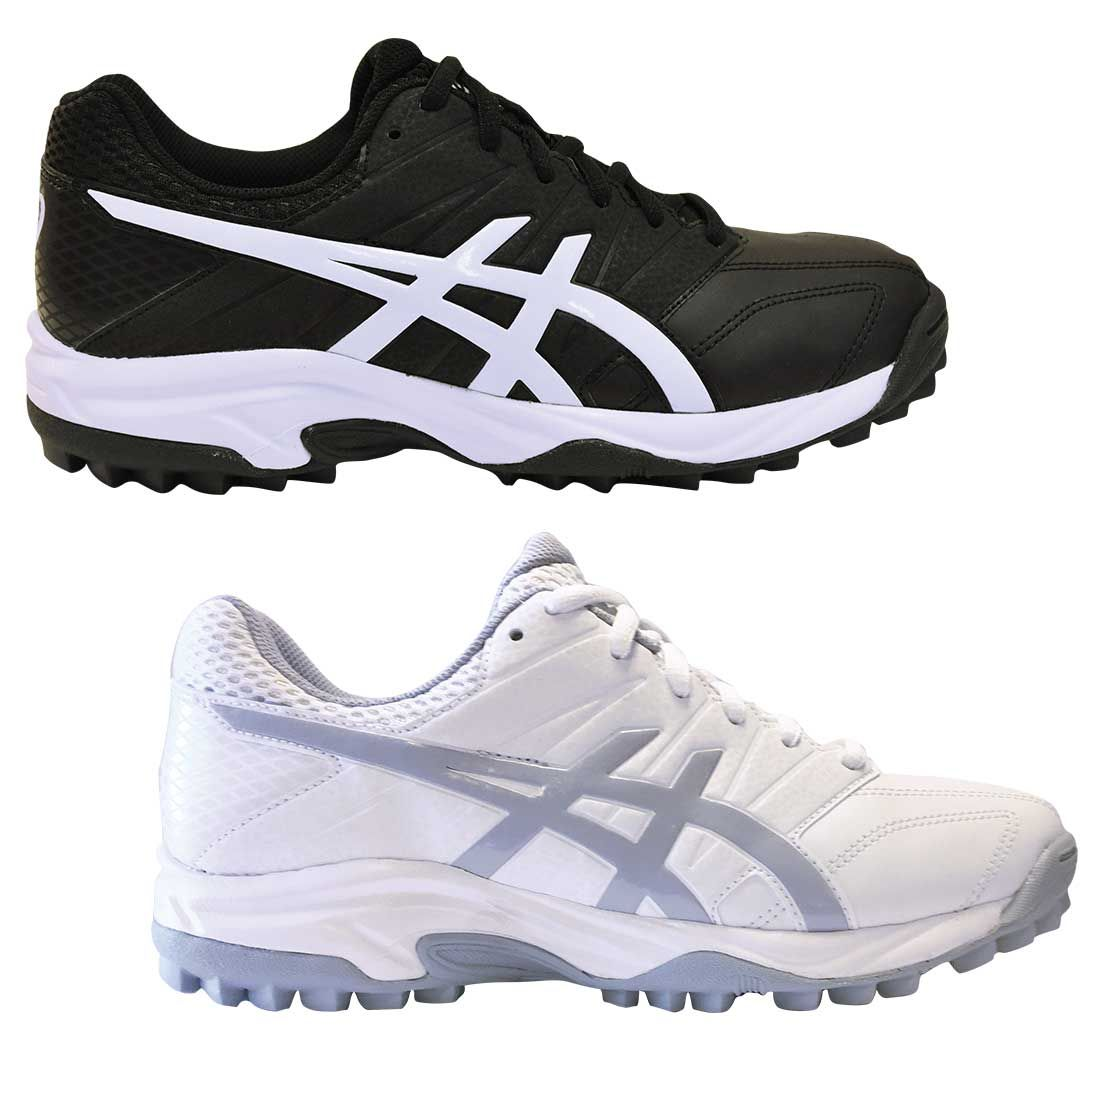 18dd0aae4e7b1 Asics Gel-Lethal MP7 Turf Shoe | fhockey /// lax | Turf shoes, Shoes ...